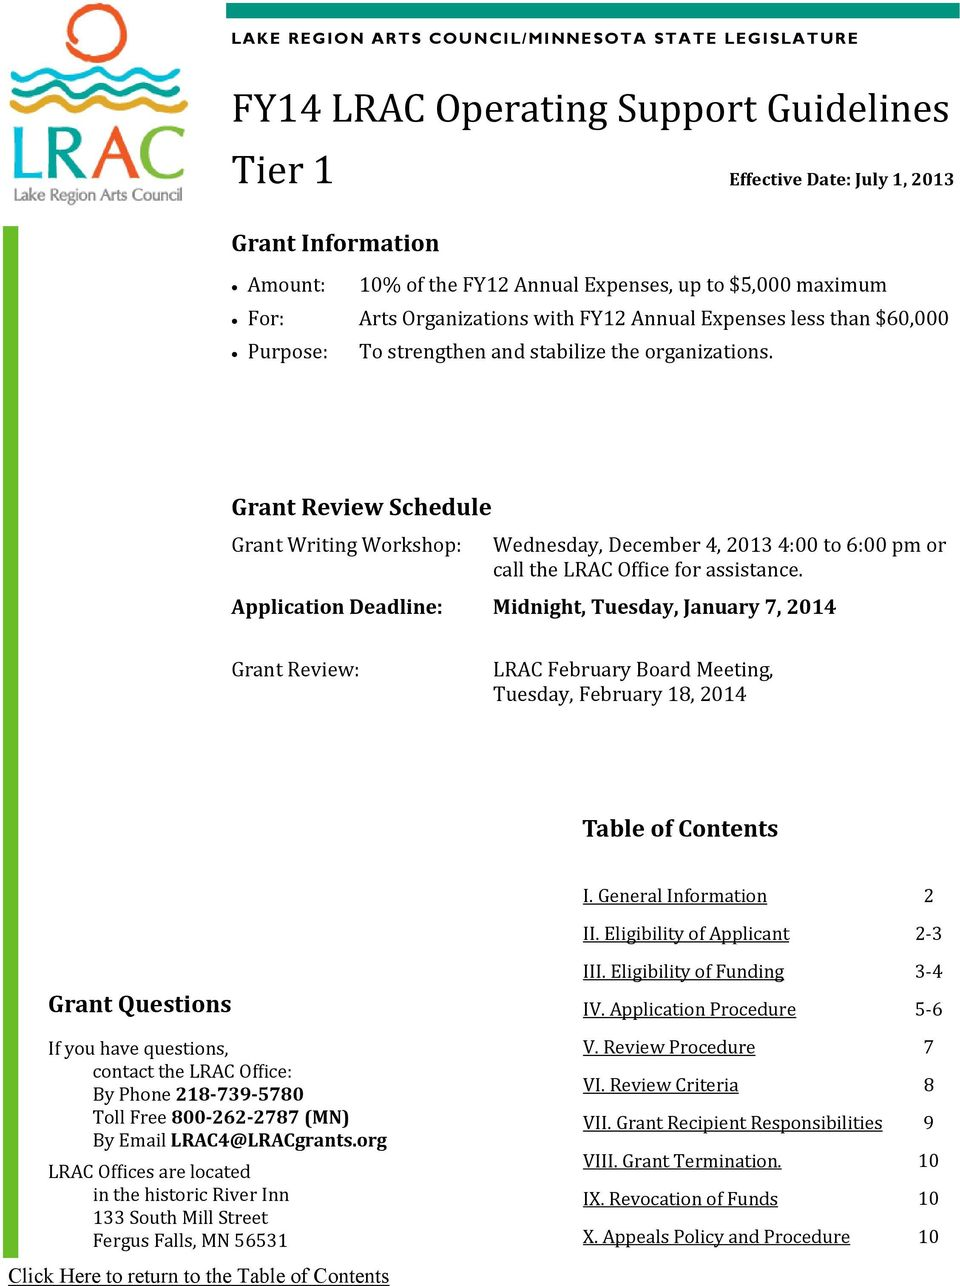 Grant Review Schedule Grant Writing Workshop: Wednesday, December 4, 2013 4:00 to 6:00 pm or call the LRAC Office for assistance.